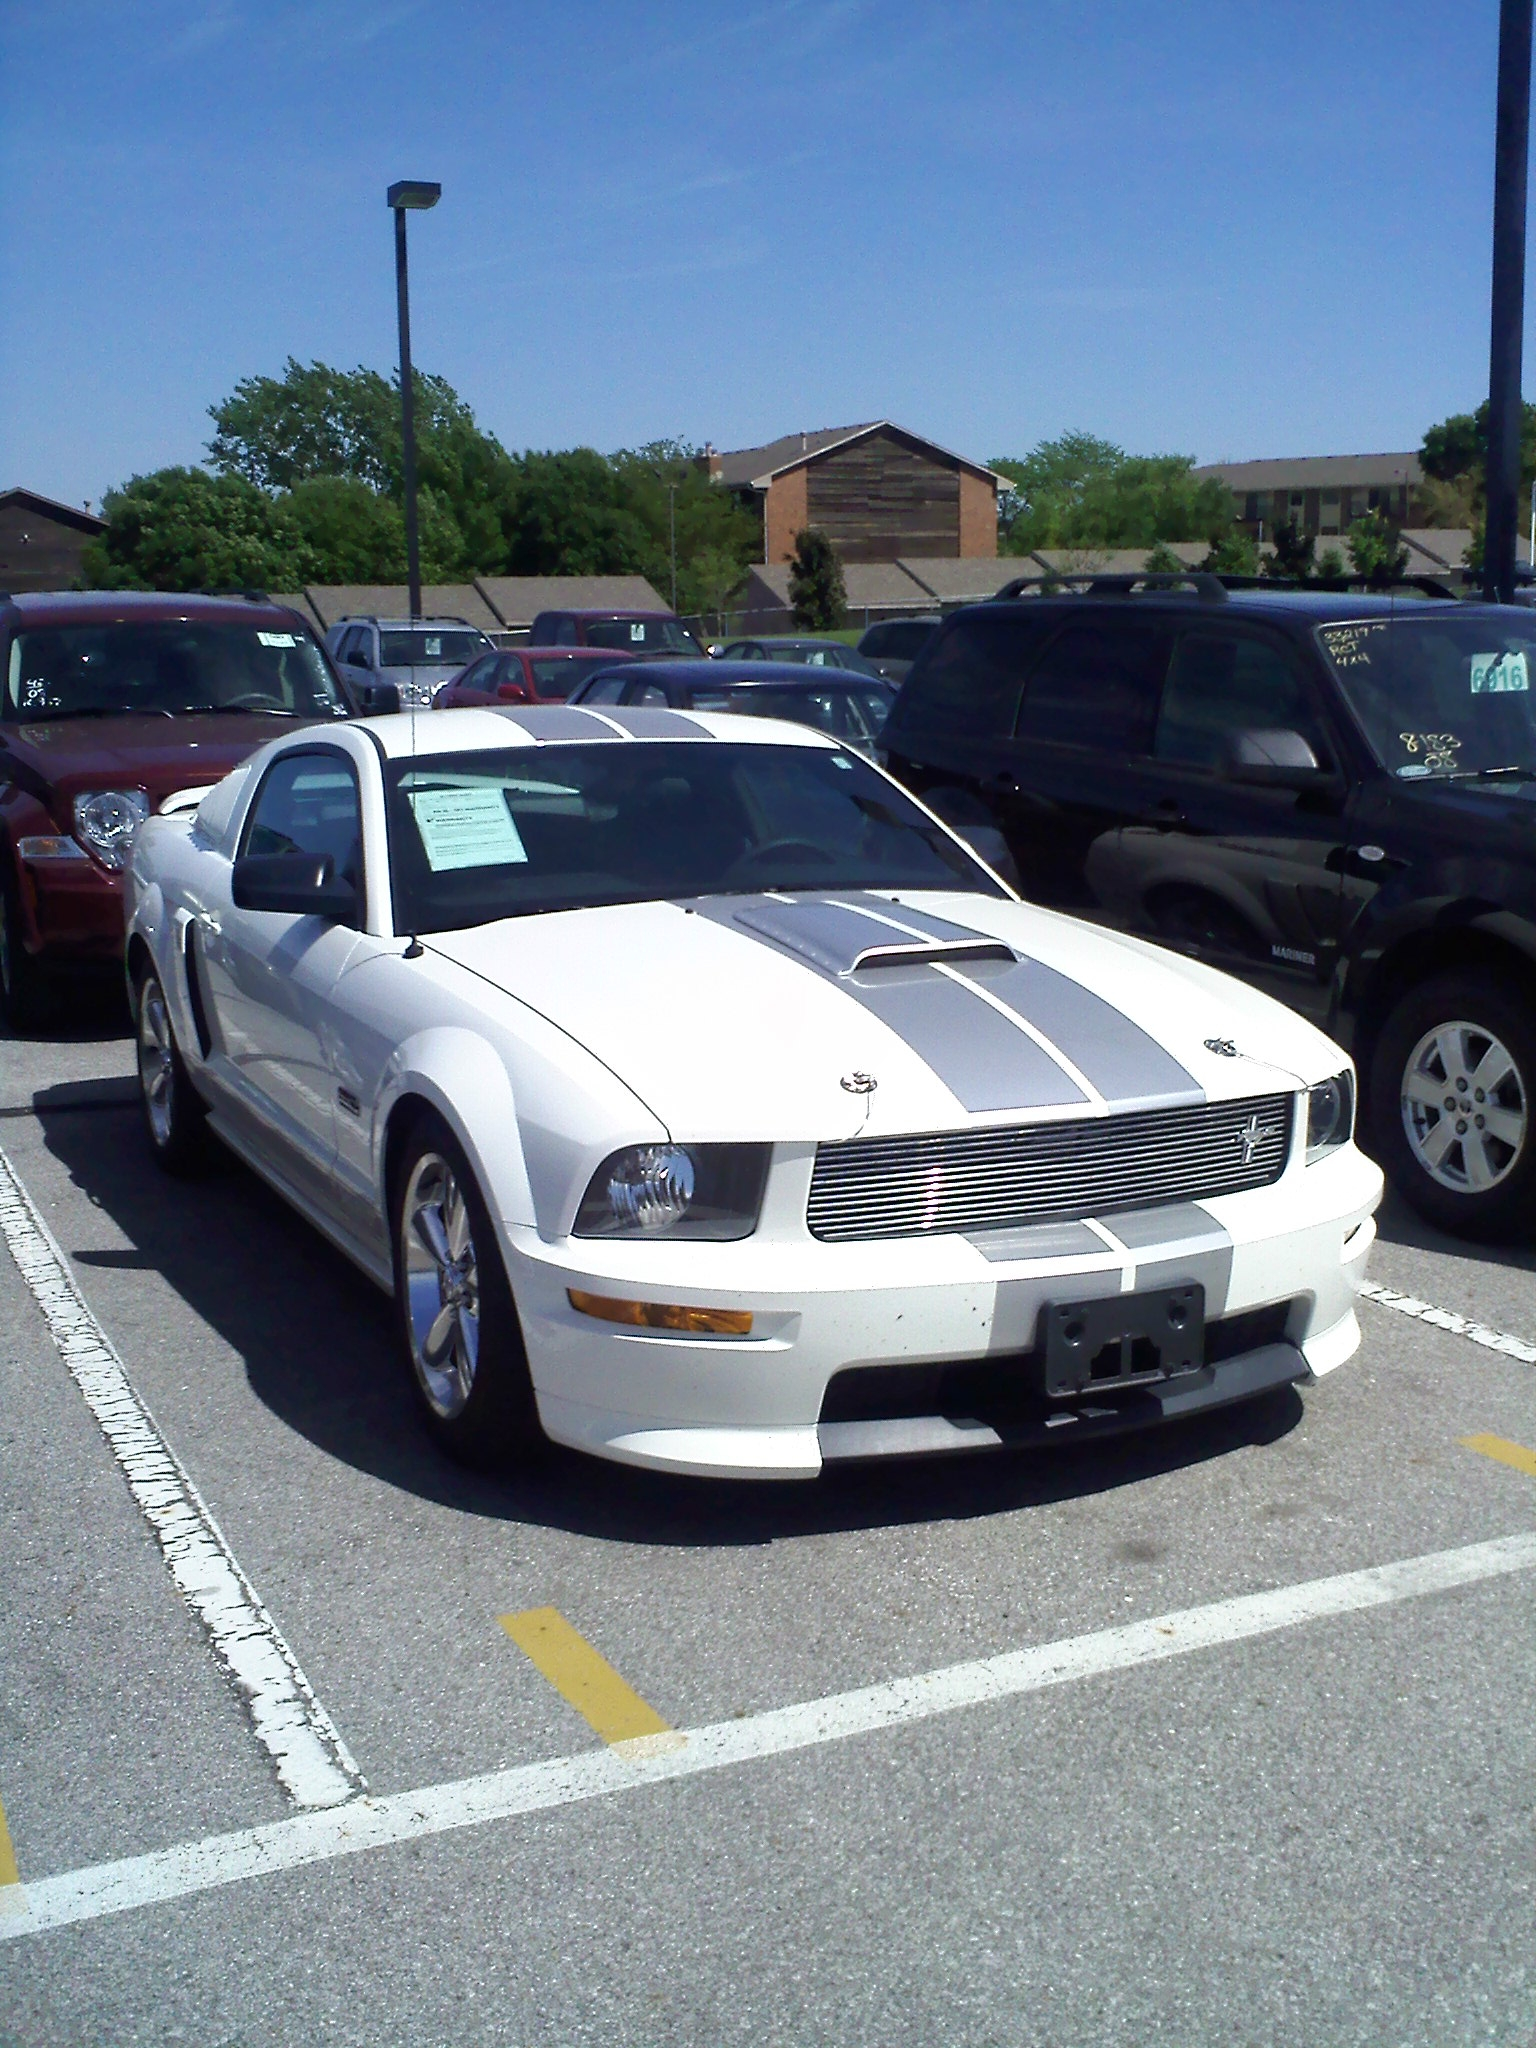 Charles Gabus Ford Des Moines Iowa >> Another Thechadwick06 2007 Ford Mustang Post 5555226 By